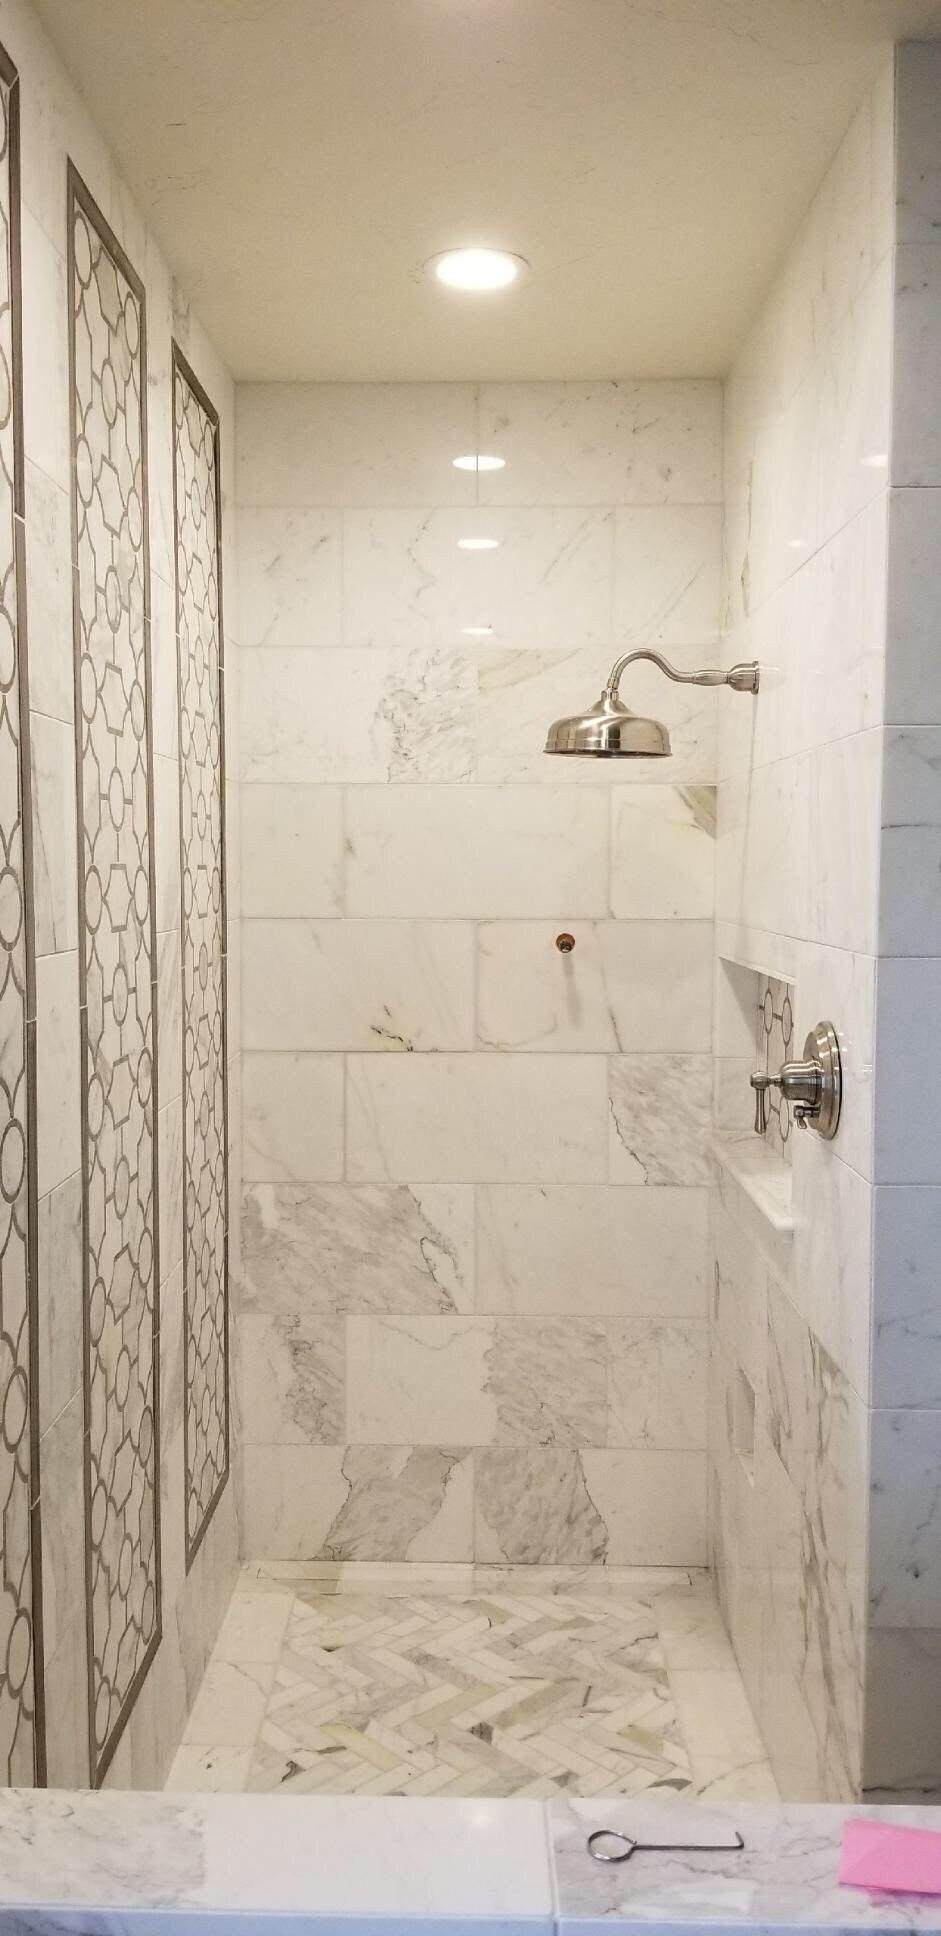 Cu bathroom remodeling projects tile showers designed with